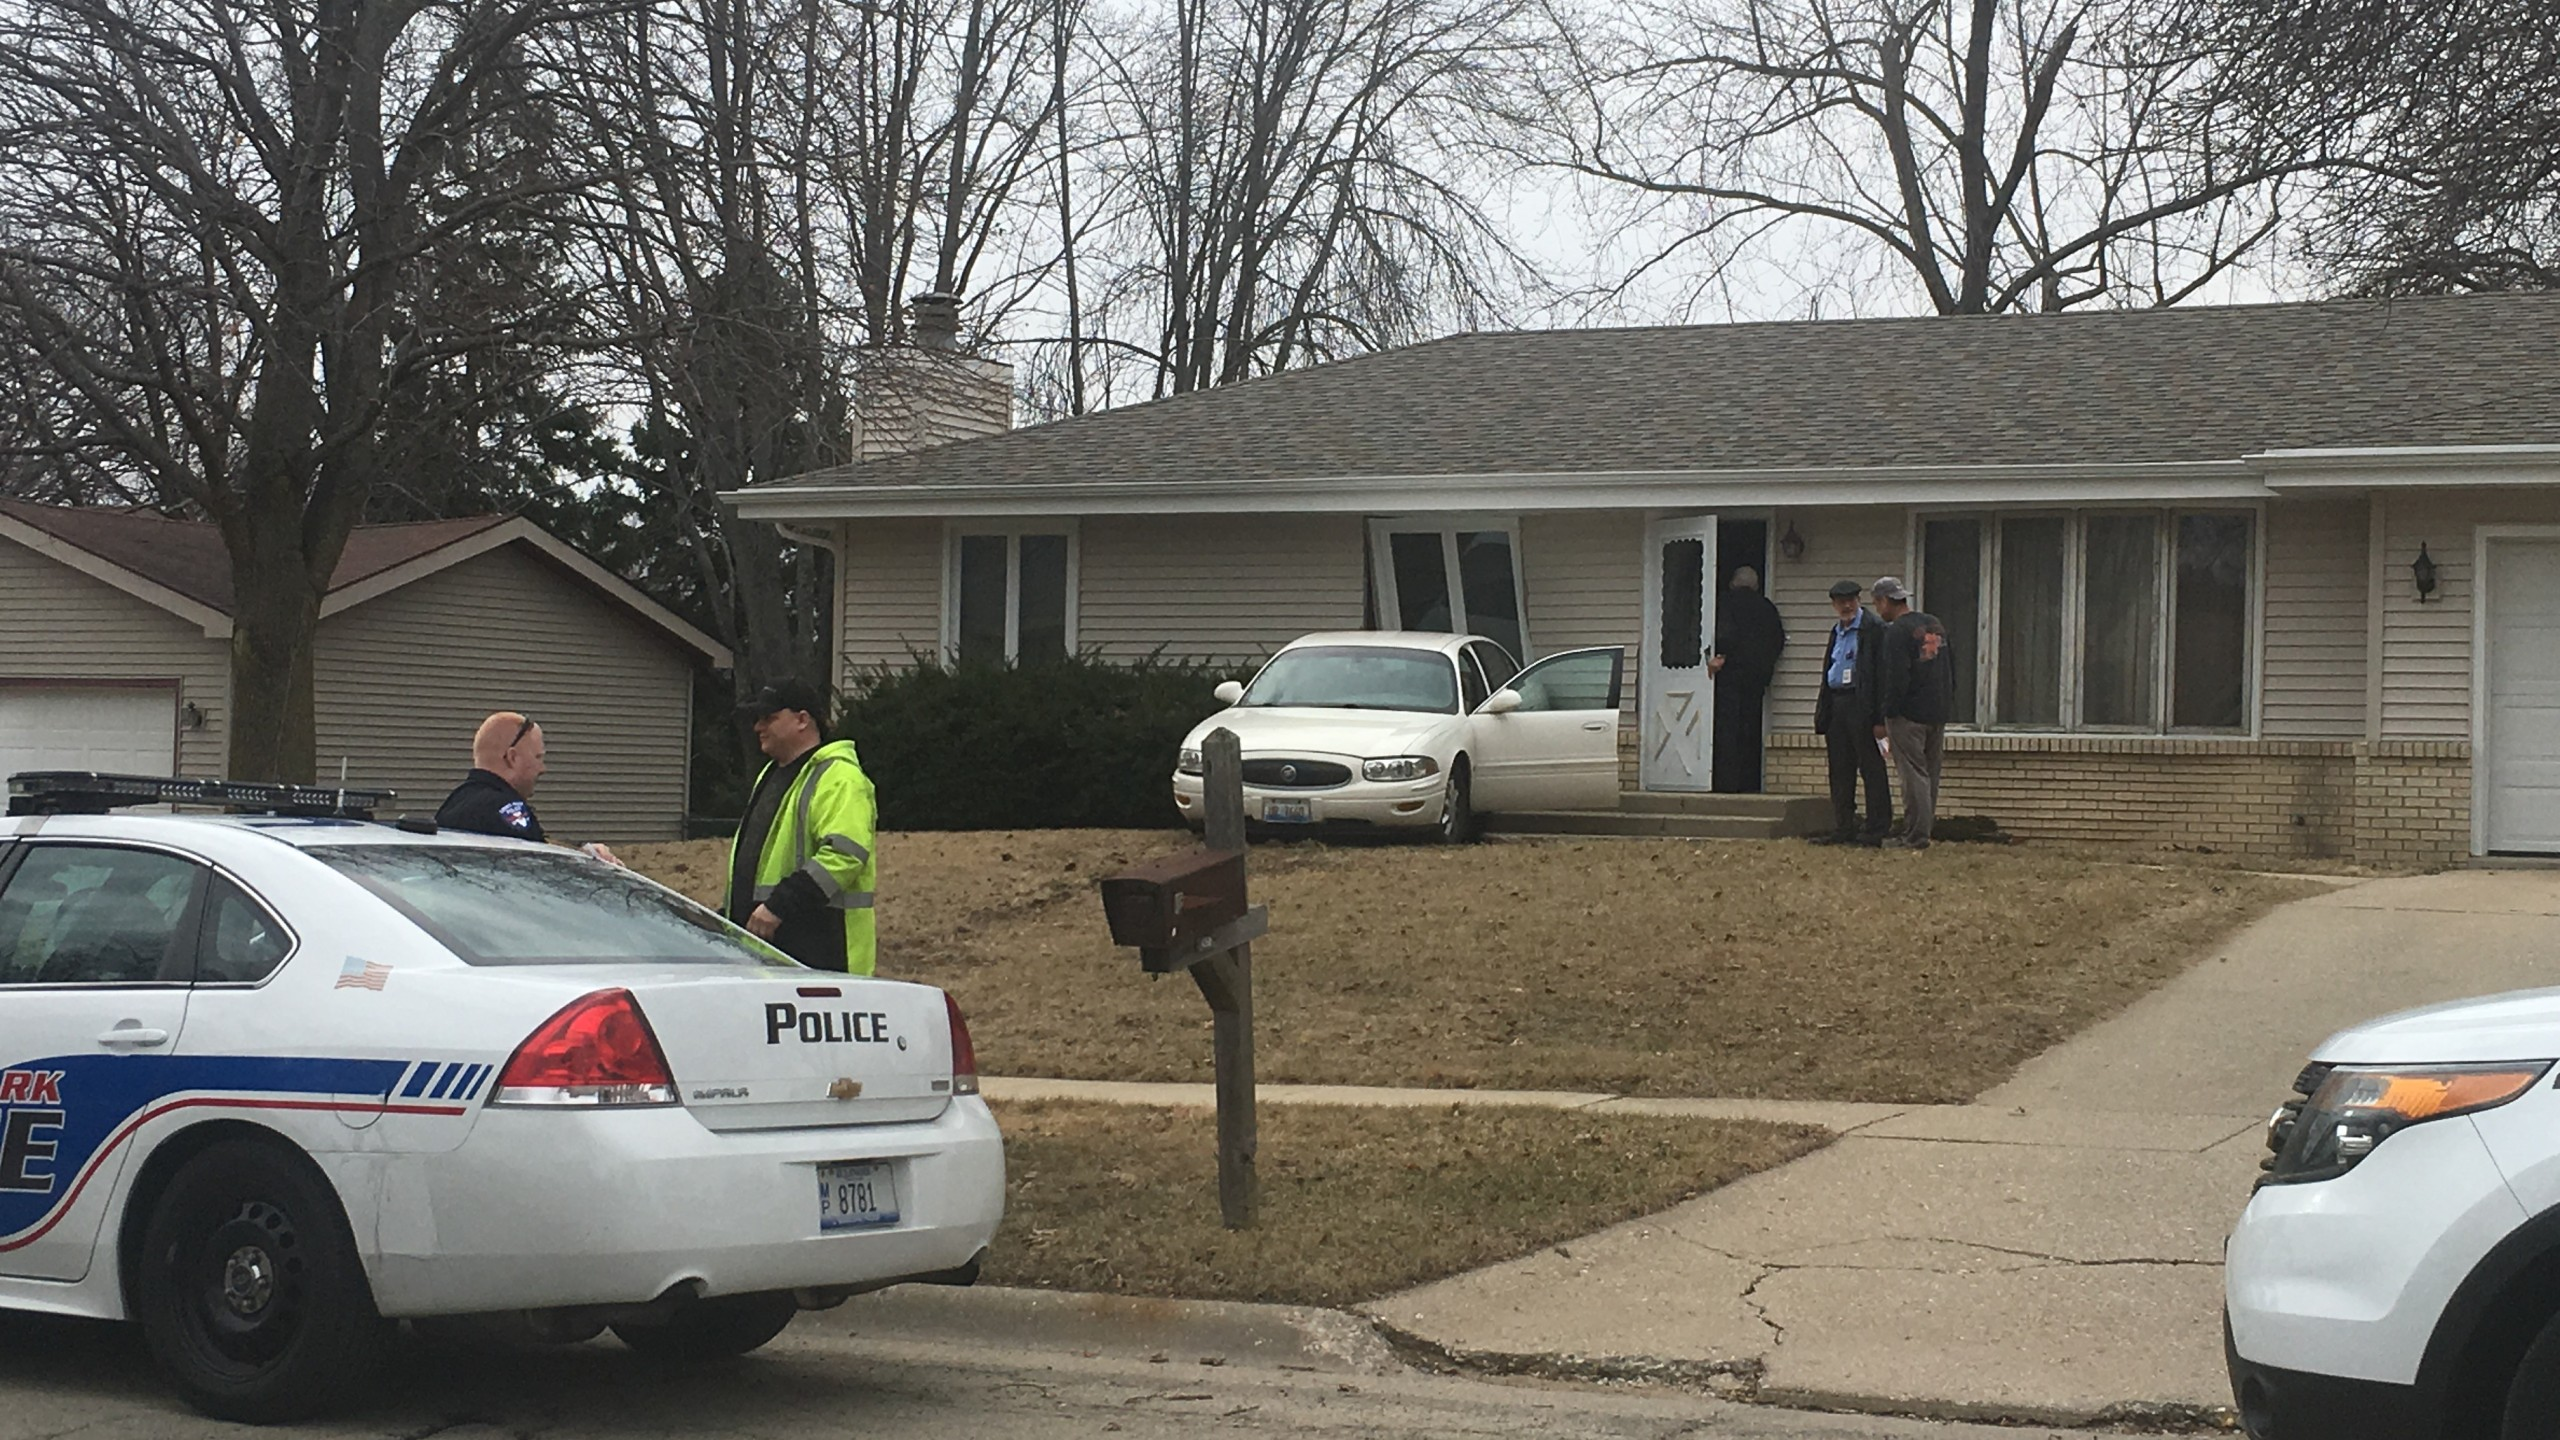 Car into House Loves Park_1487622197723.jpg